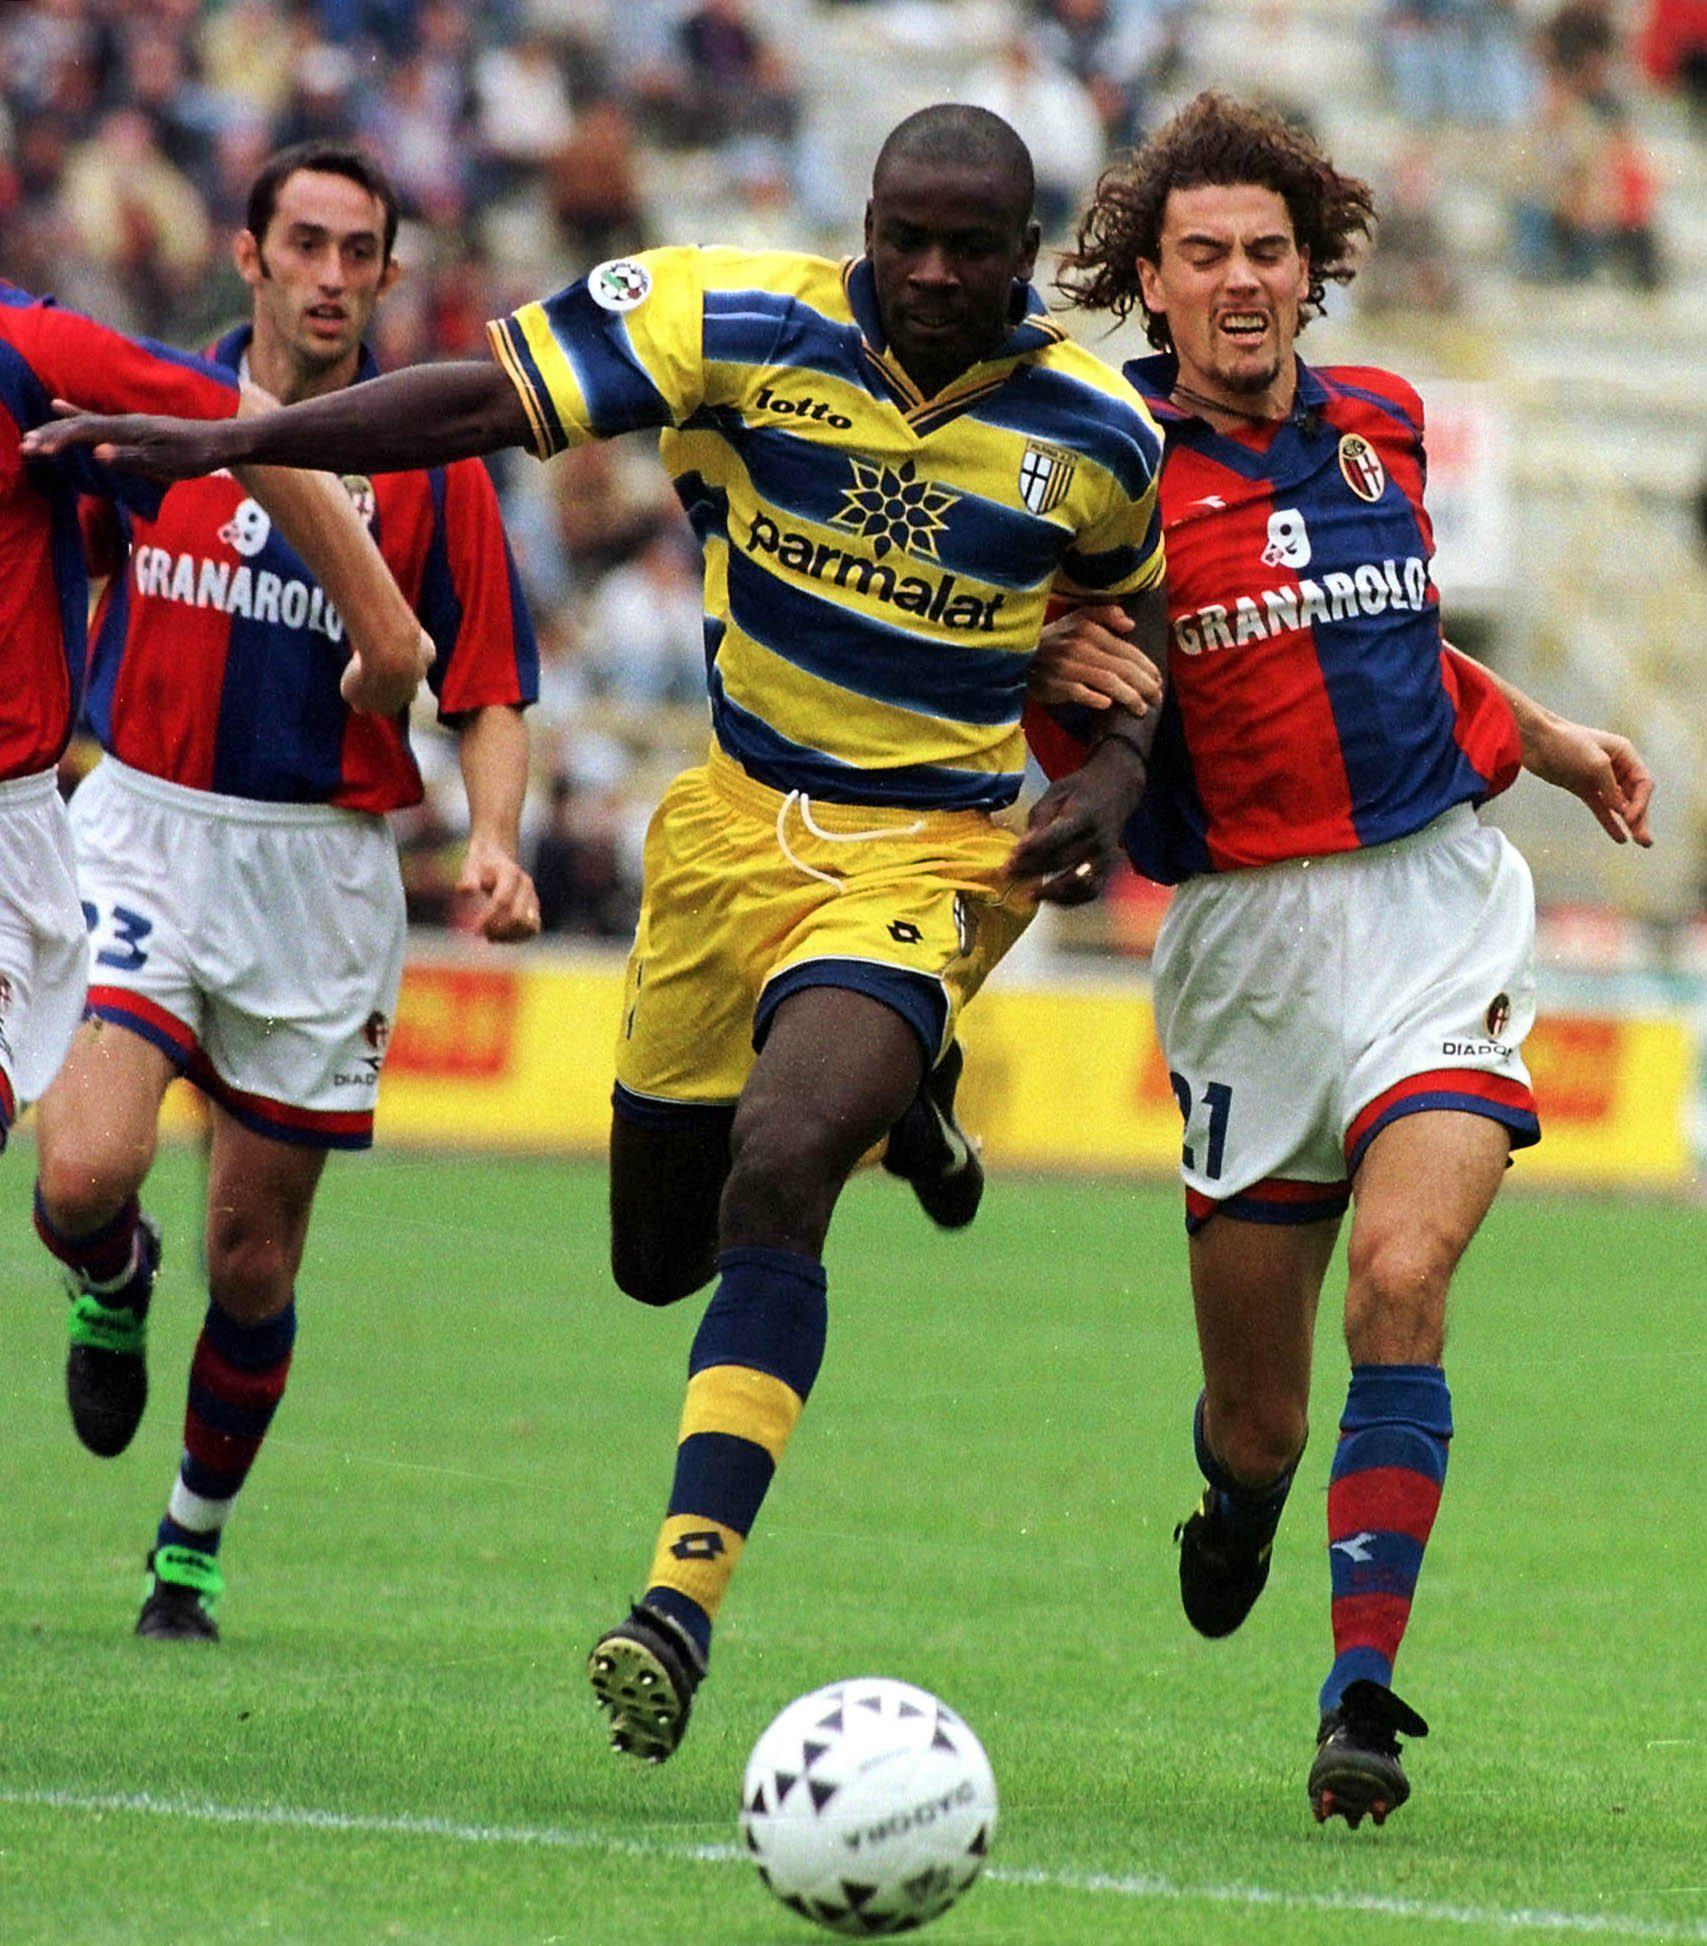 Thuram was hard as nails